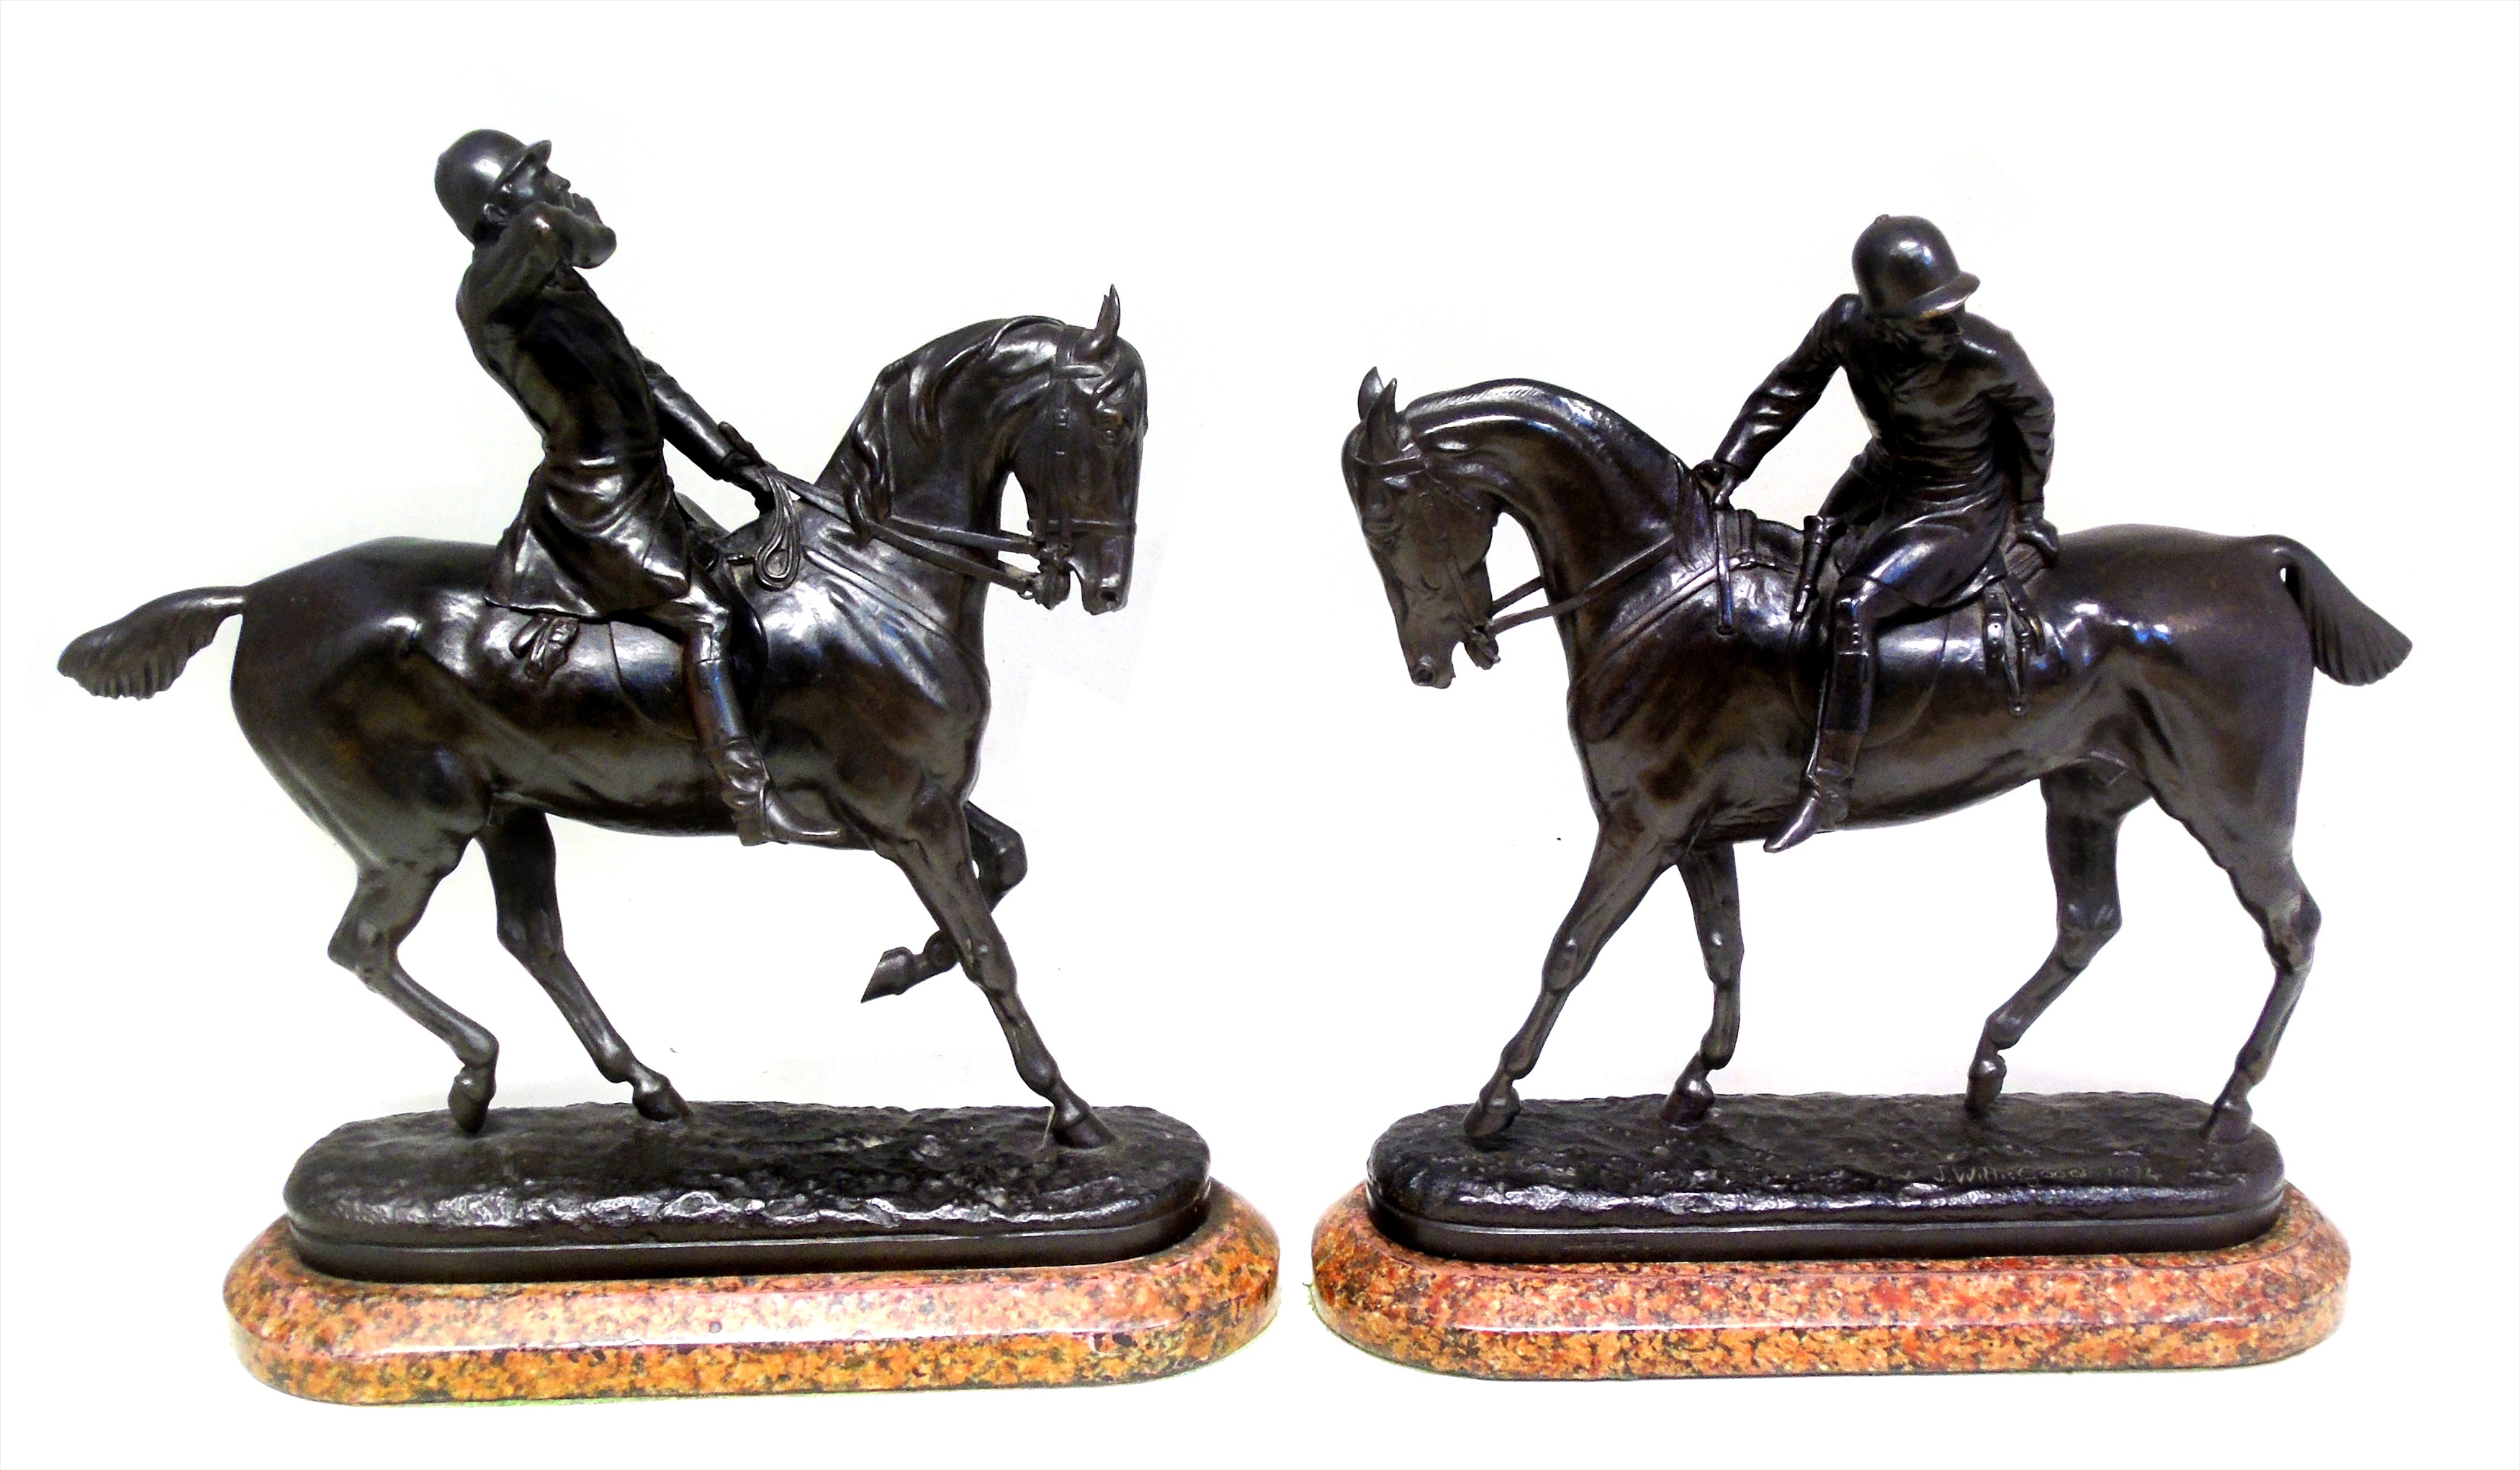 "Pair of bronze figures of huntsmen, each cast in the form of a figure sitting on a horse, one hollering, the other listening, oval bases signed J. Willisgood, 1874, height 28cm (11""), each bronze supported on pink granite plinths."